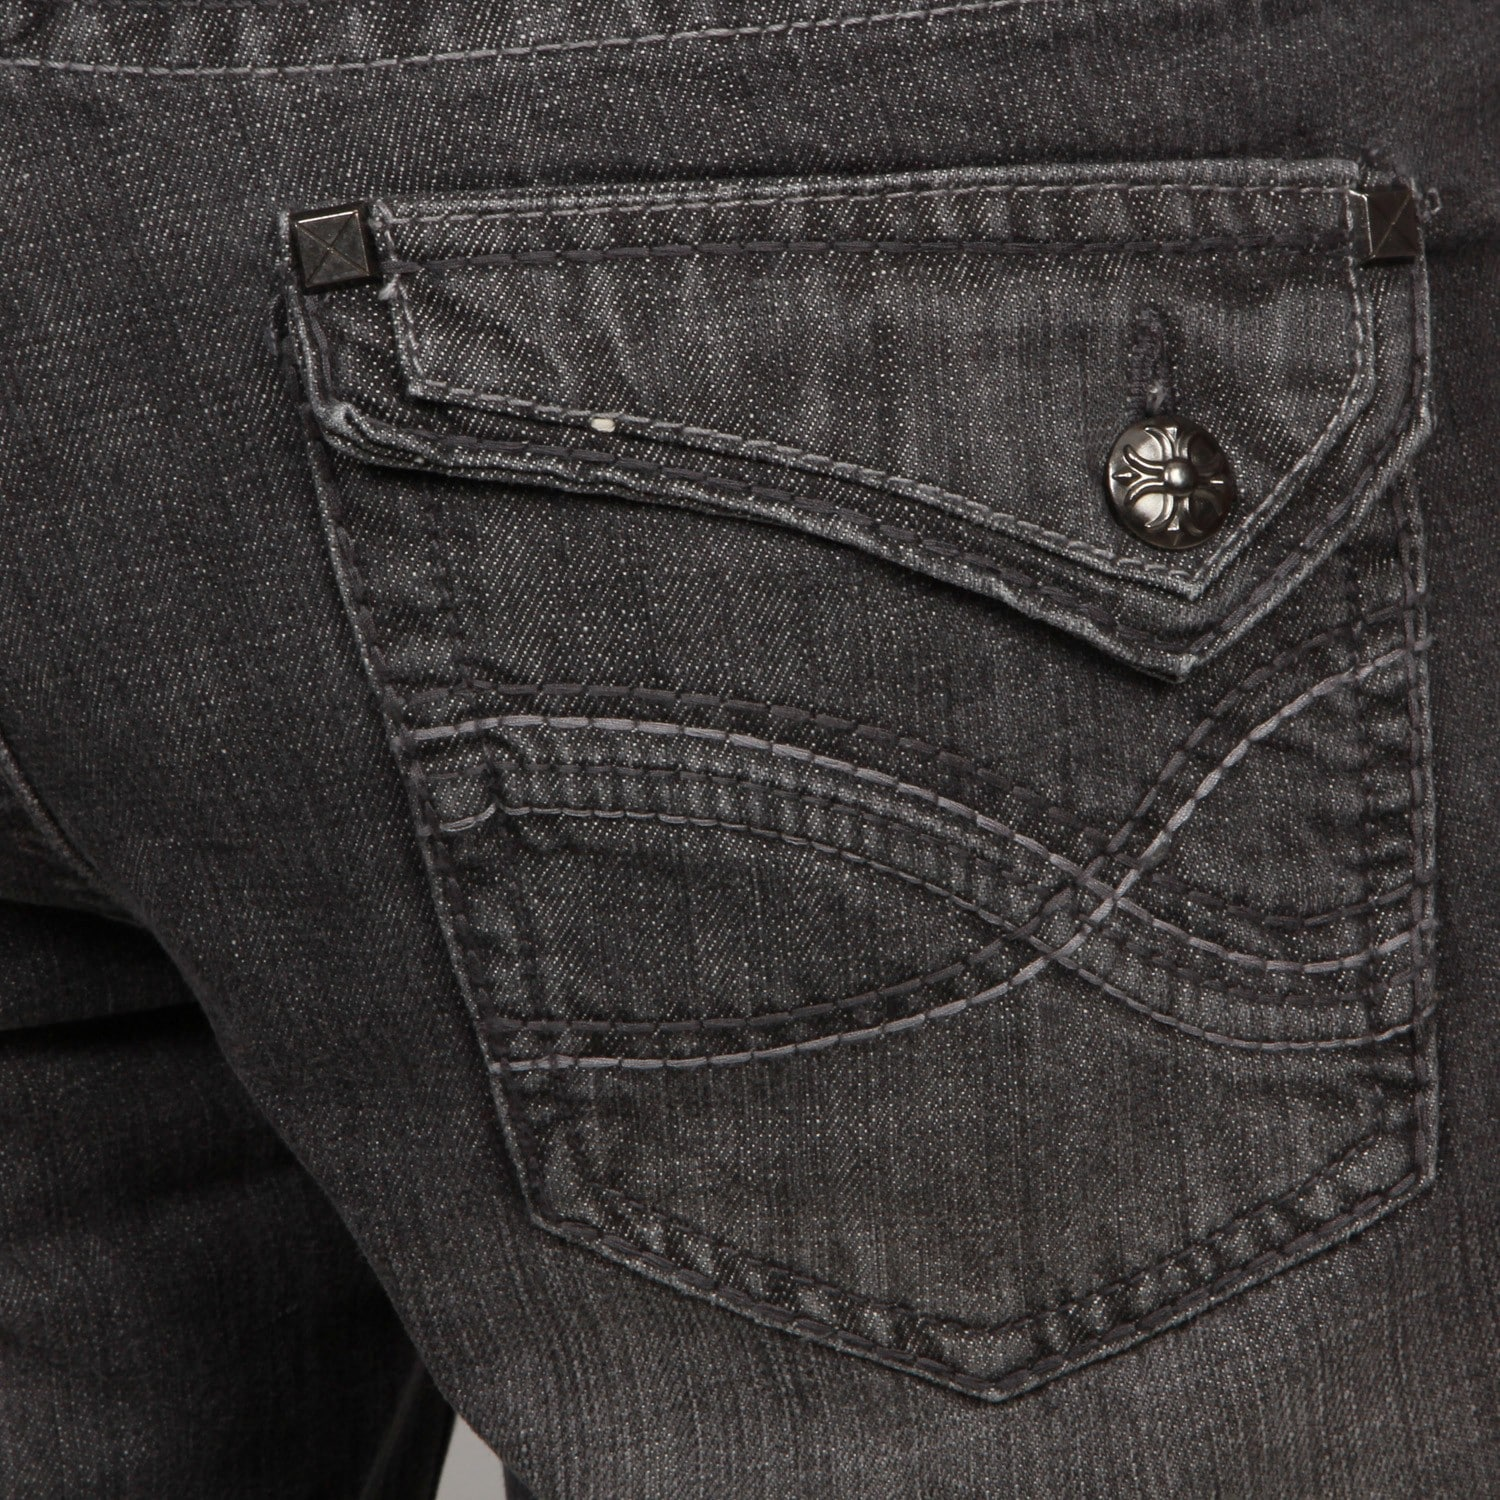 84e0f255d78 Shop Royal Premium Men's Relax Fit 5-pocket Denim Jeans - Free Shipping On  Orders Over $45 - Overstock - 6316108